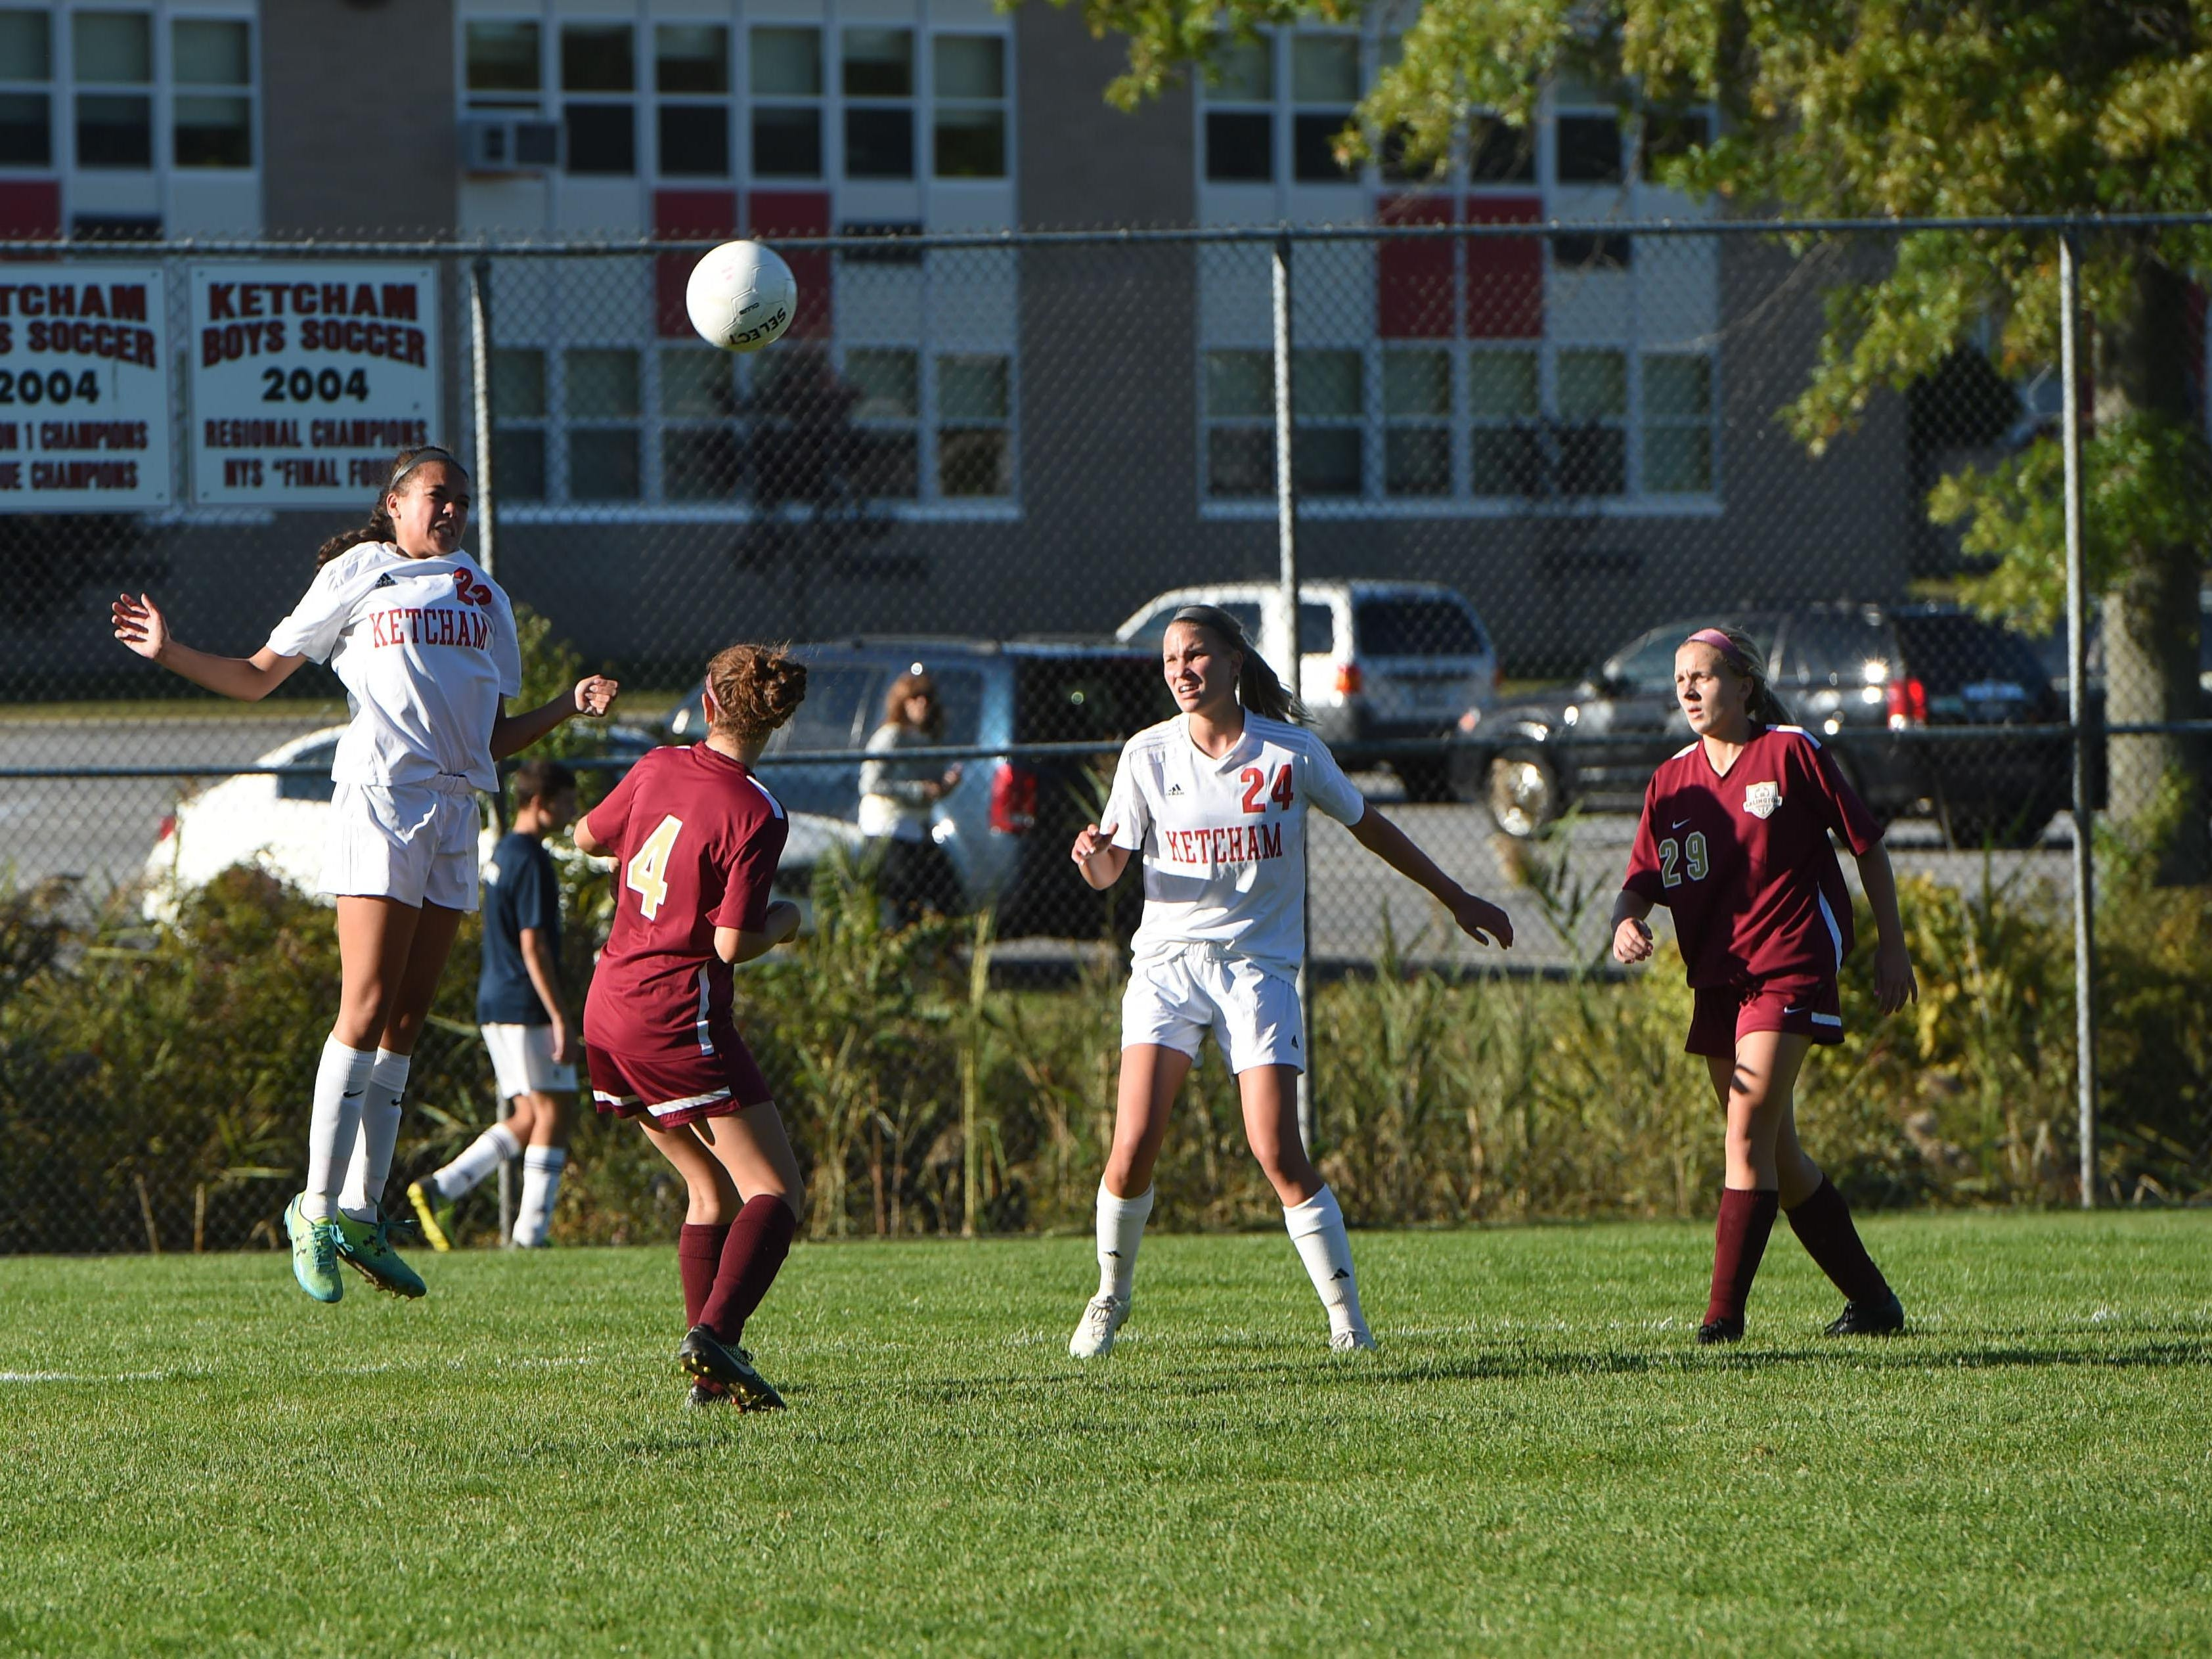 Ketcham's Jolinn Alonzo, left, heads the ball down field as teammate Emily Bender, center right, and Arlington's Michaela Fasalino, center left, and Molly Feighan, right, look on.